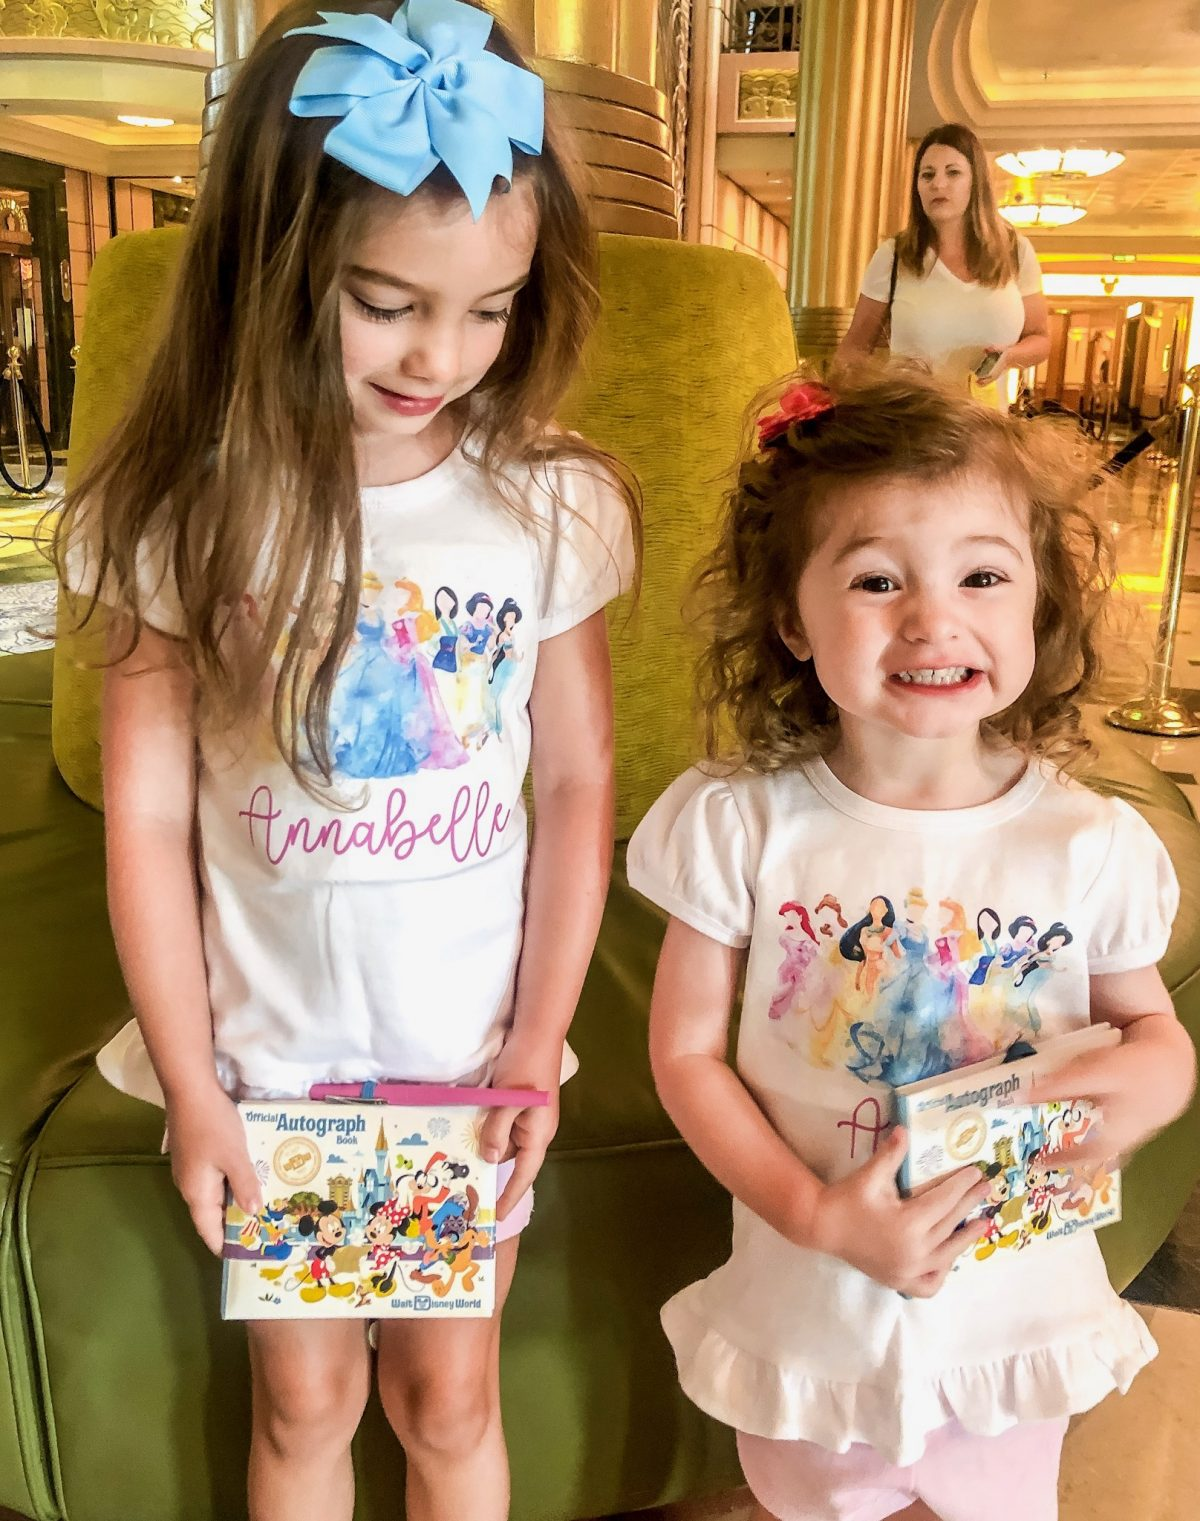 Personalized Princess Shirts on Girls for Disney Cruise